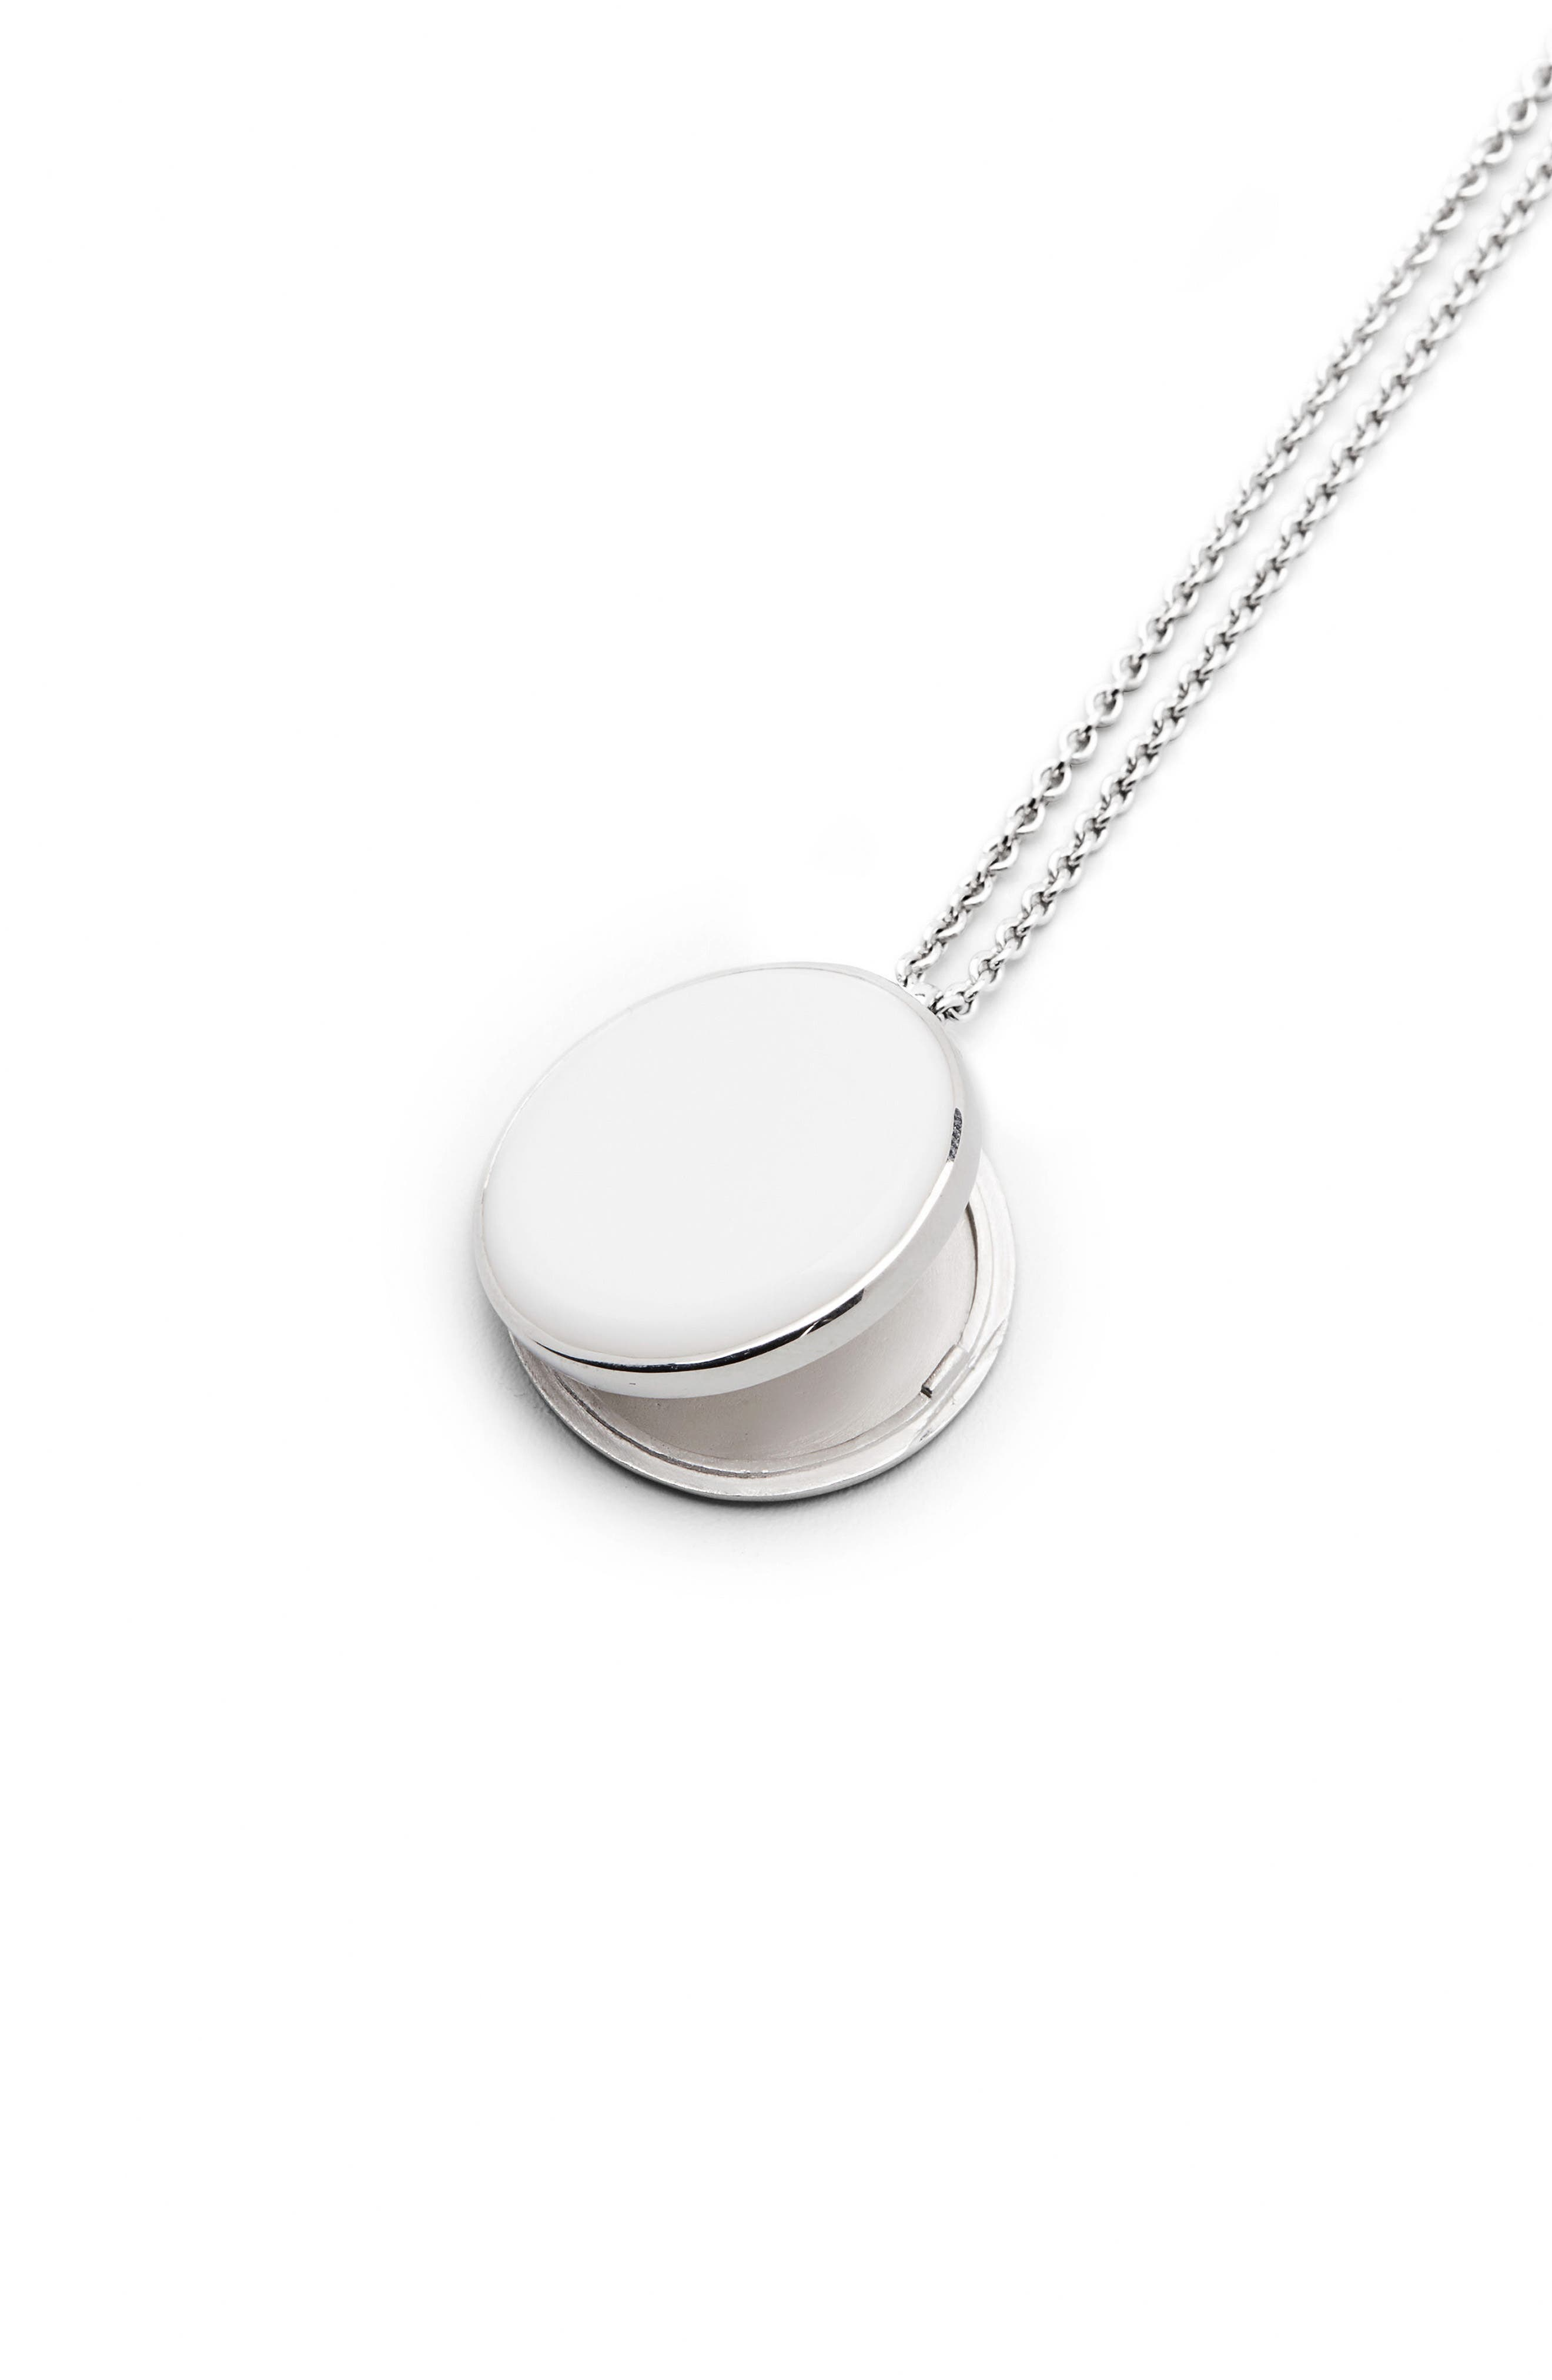 White Agate Medallion Necklace,                             Alternate thumbnail 3, color,                             925 Sterling Silver